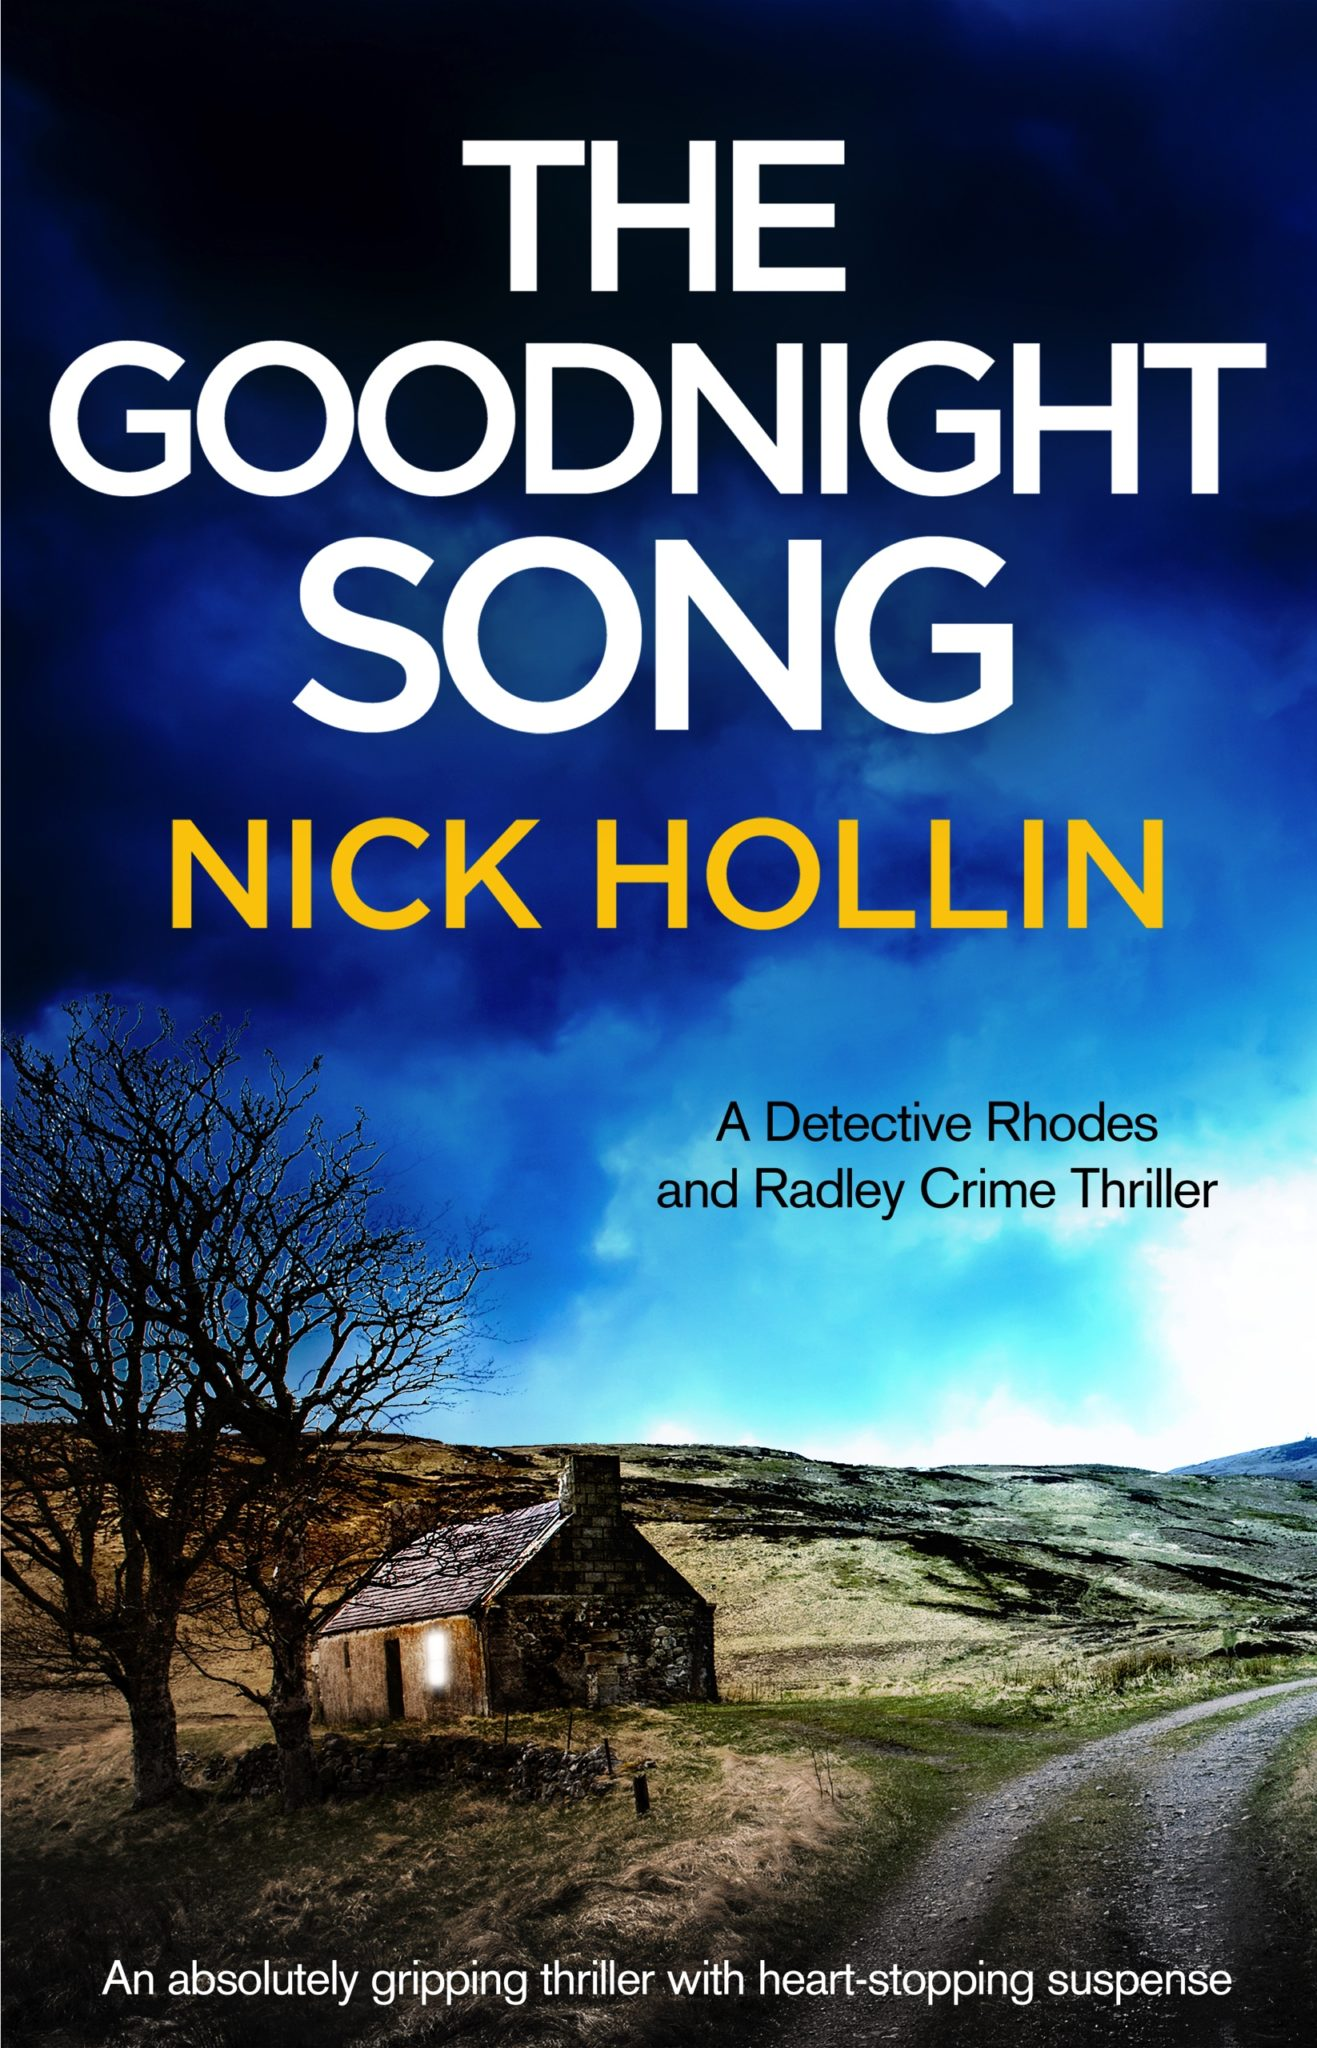 The Goodnight Song by Nick Hollin